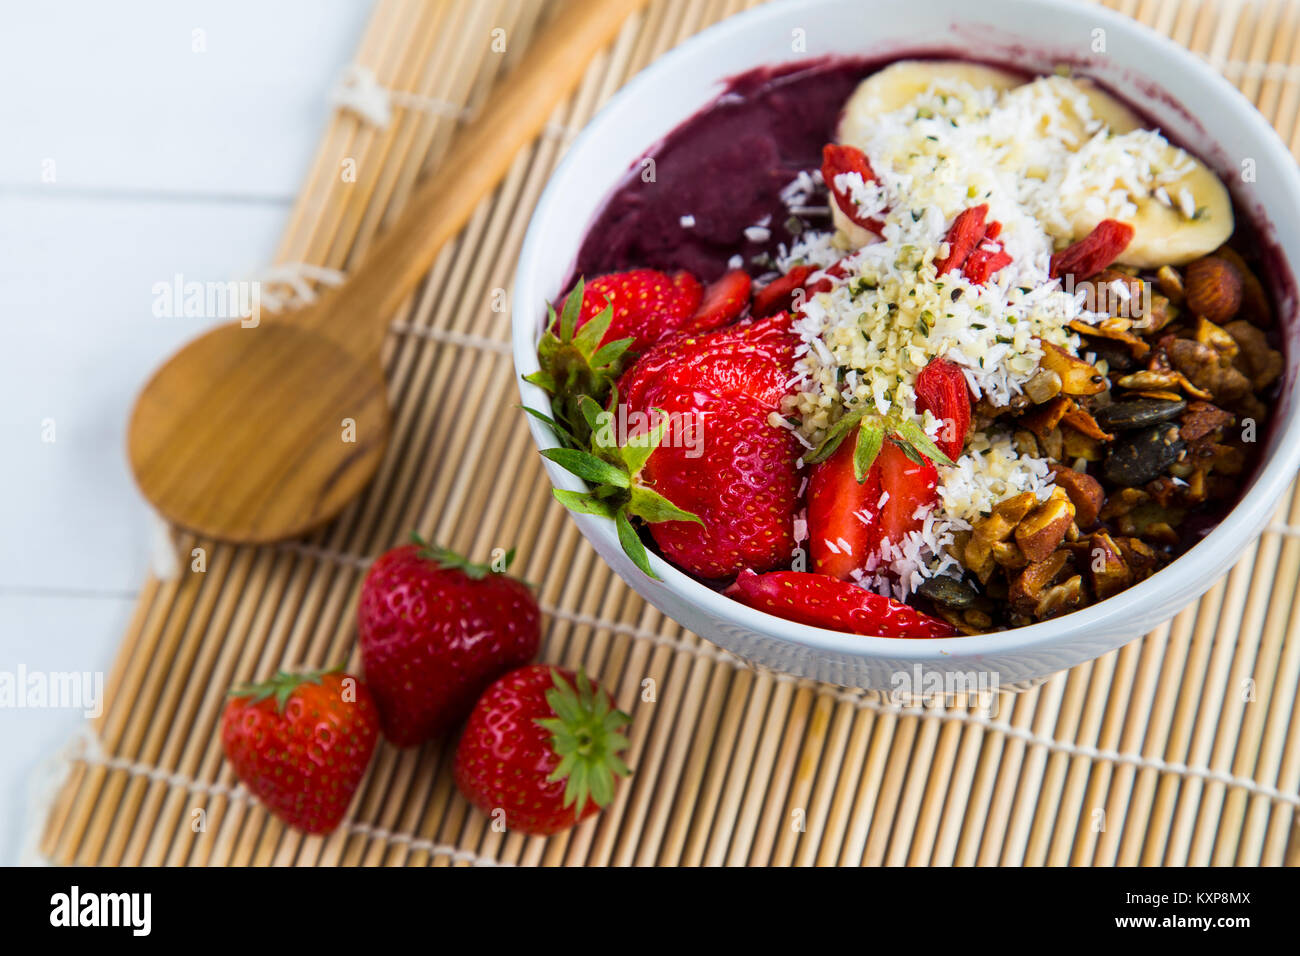 Acai bowl and strawberries - Bowl of acai purée with toppings of banana, strawberry, granola and seeds. - Stock Image